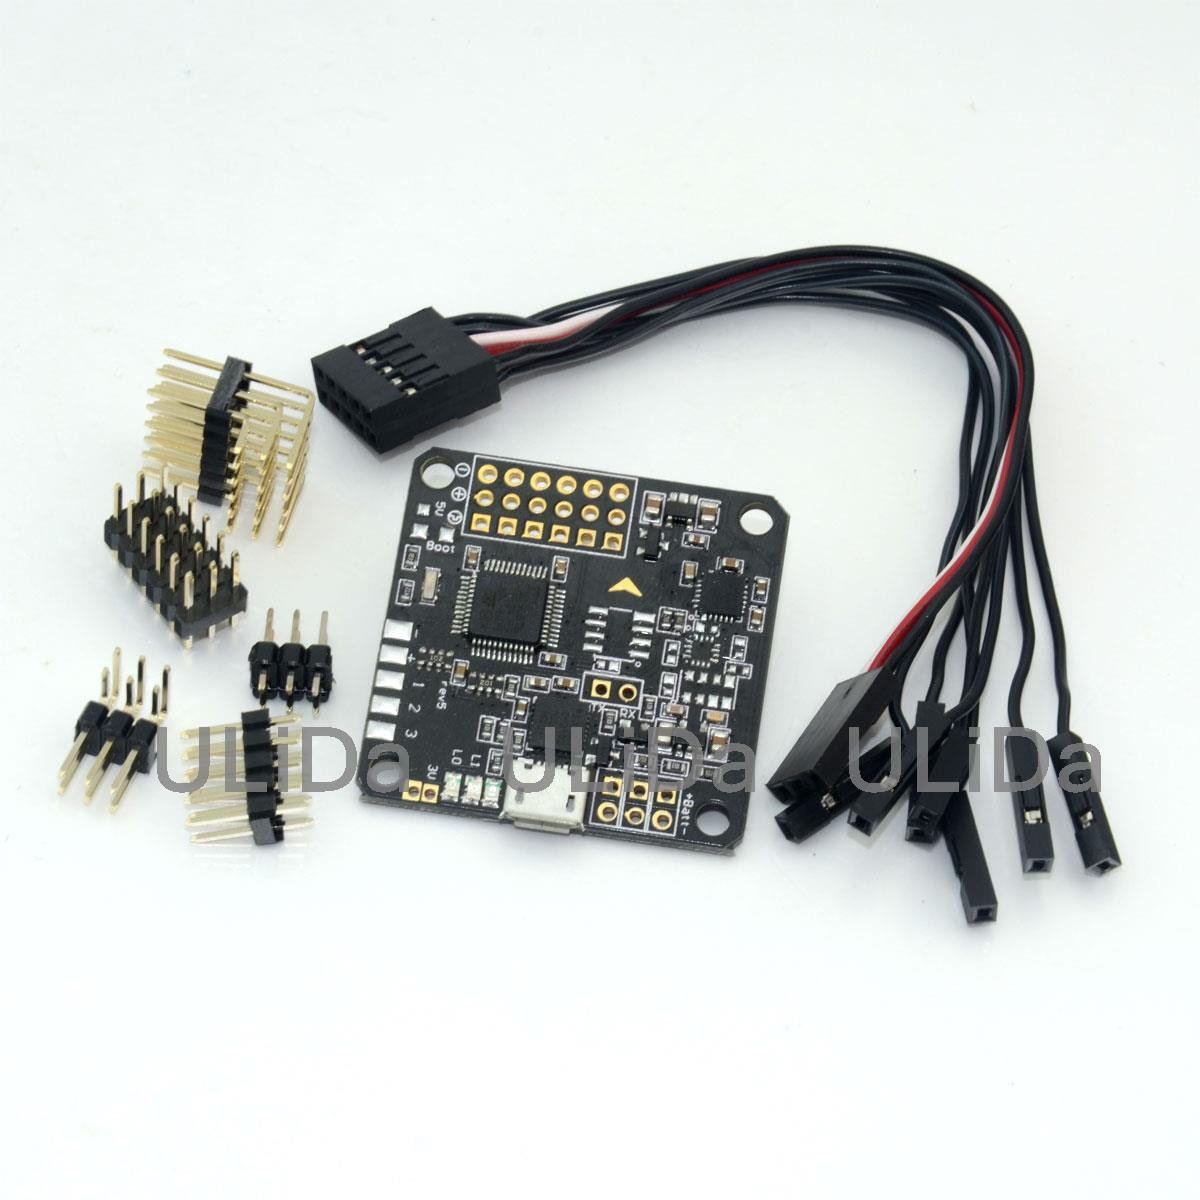 Lowered Afro Flight Naze32 Rev5 6dof Control For Mini Schematic Quadcopter Qav250 Zmr250